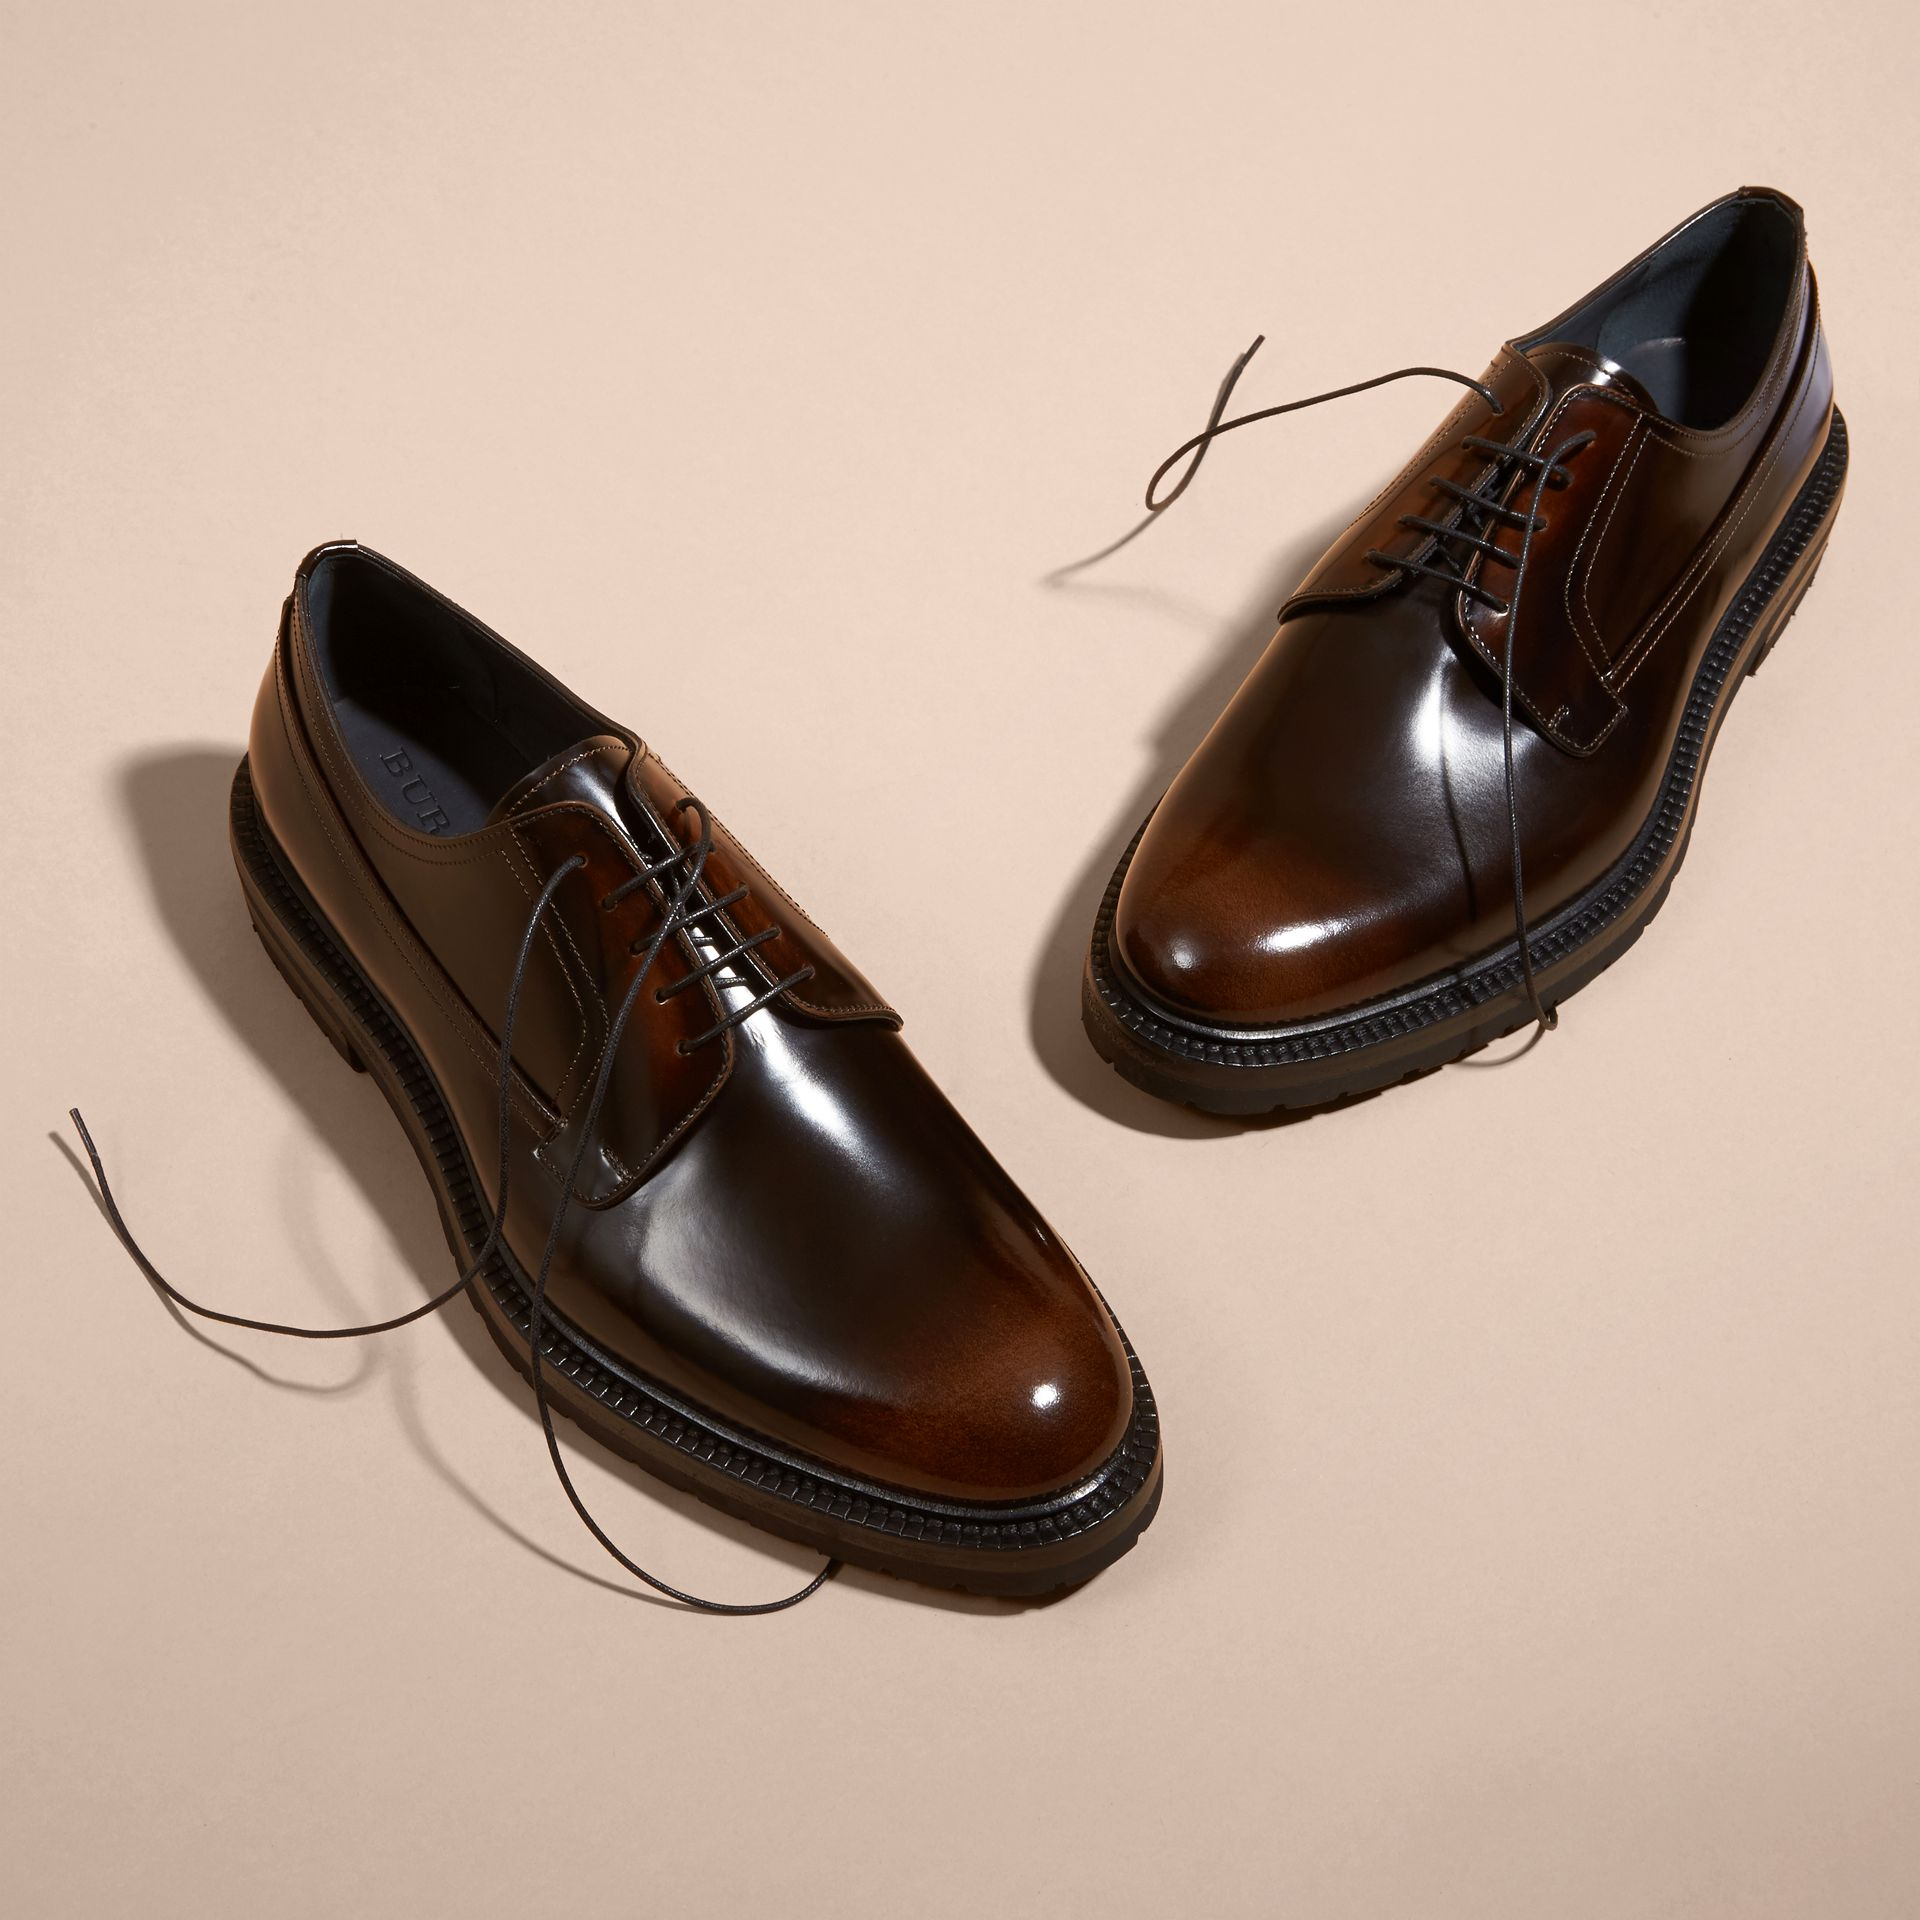 Chaussures de style derby en cuir bruni (Chocolat Amer) - Homme | Burberry - photo de la galerie 3